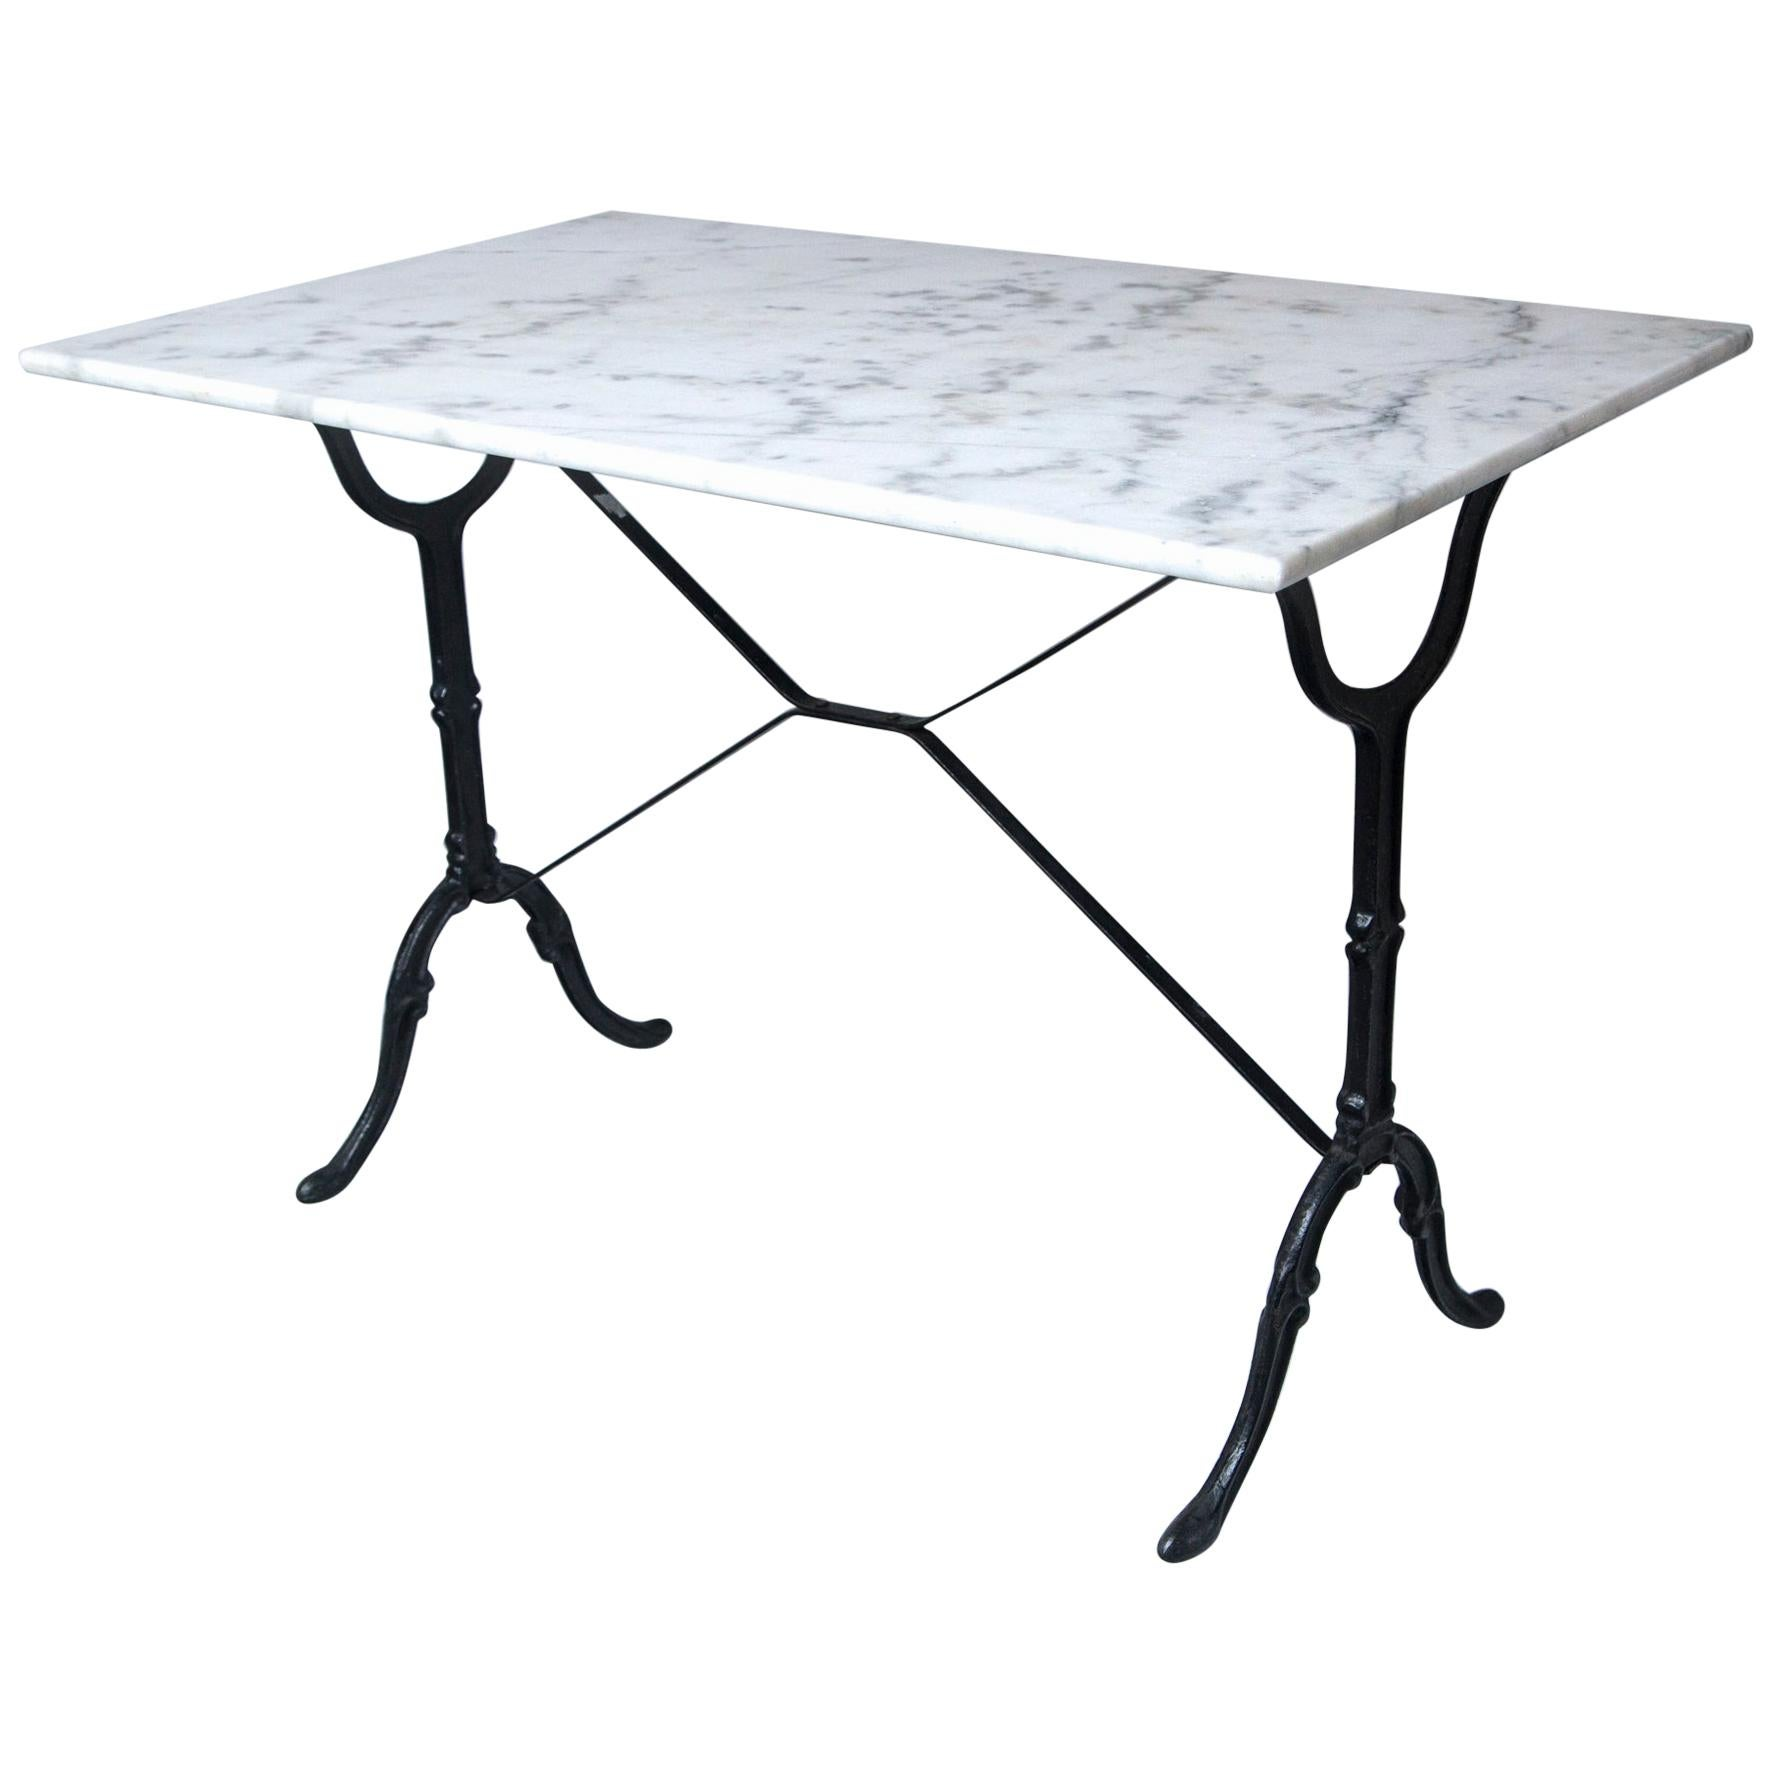 Marble Top Cast Iron Bistro Table, France, Early 20th Century